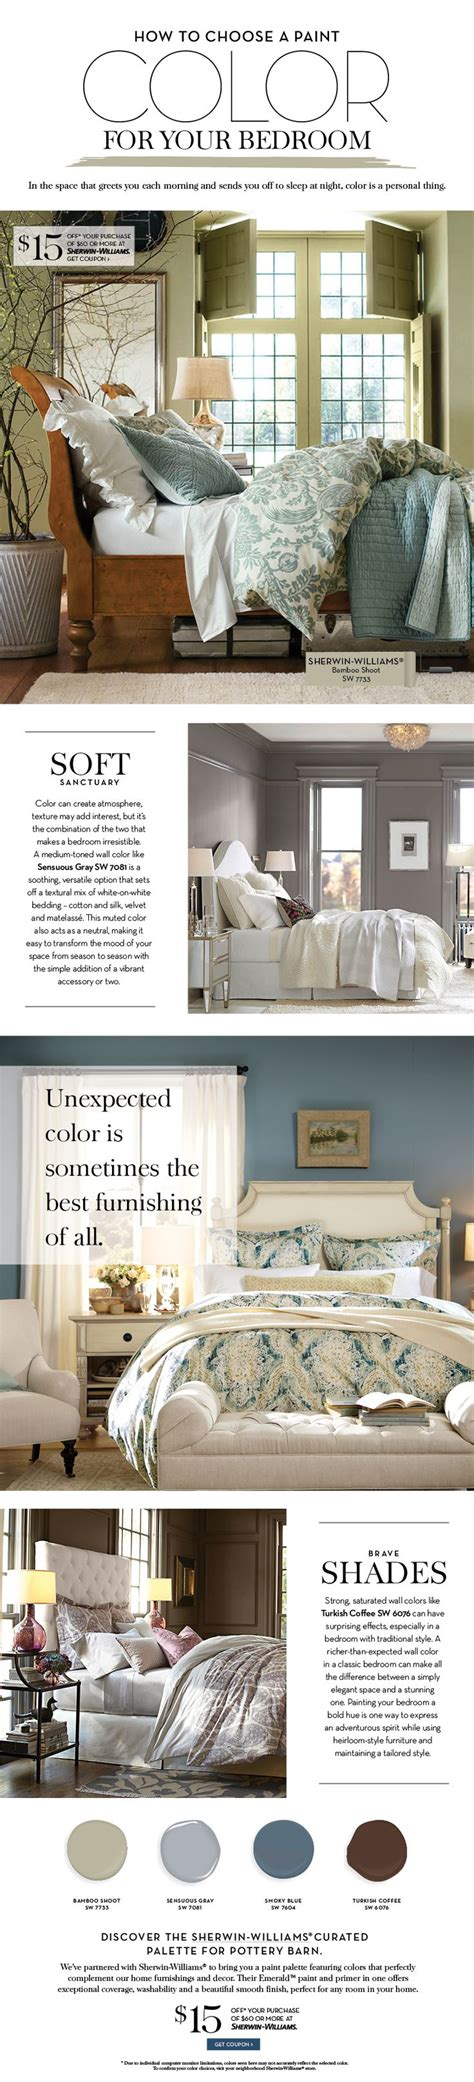 Bedroom Colors Pottery Barn 40 Best Images About Exterior Paint Ideas On